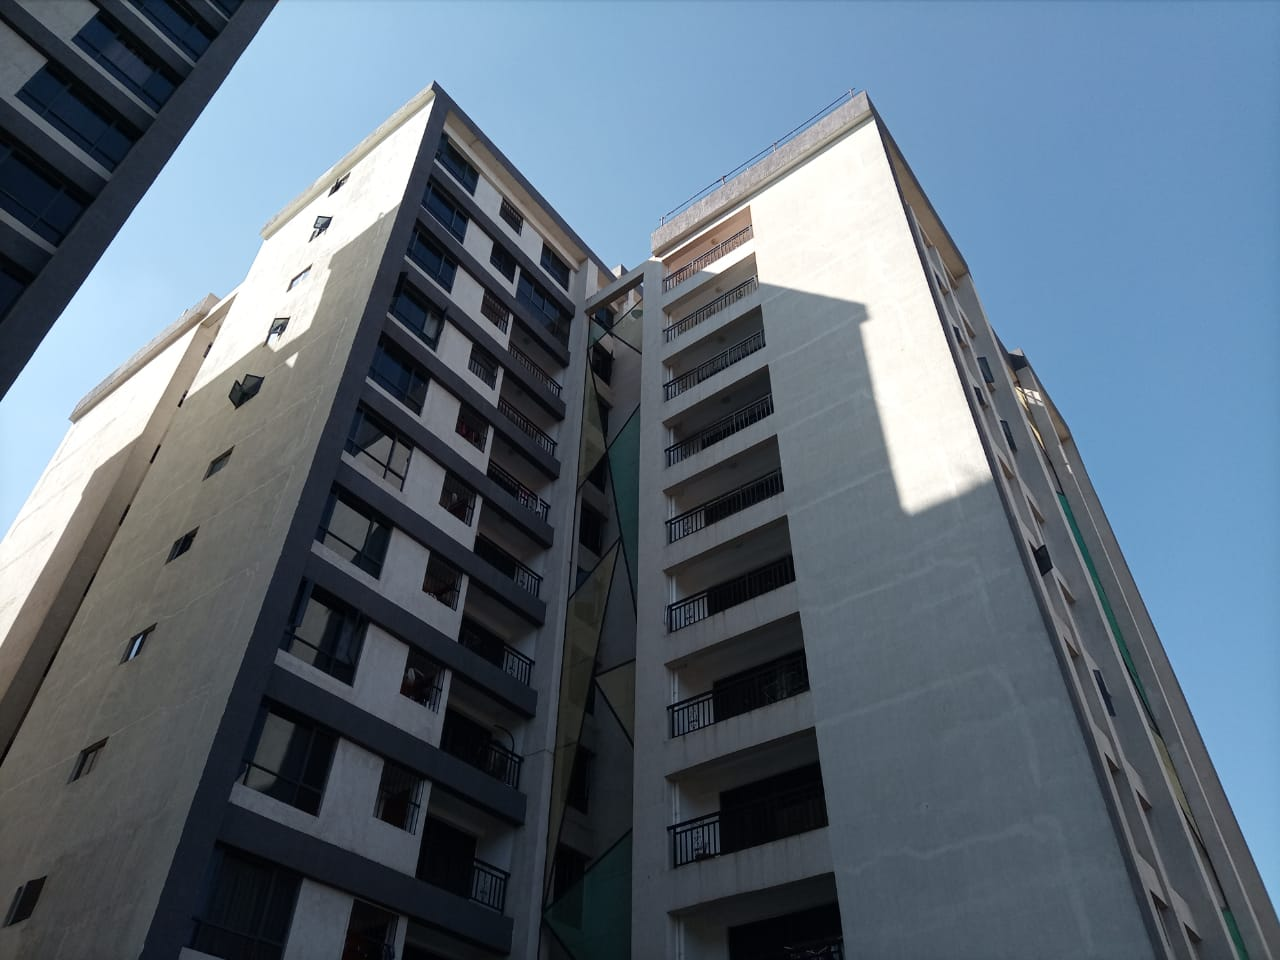 3 Bed Apartment in Kilimani